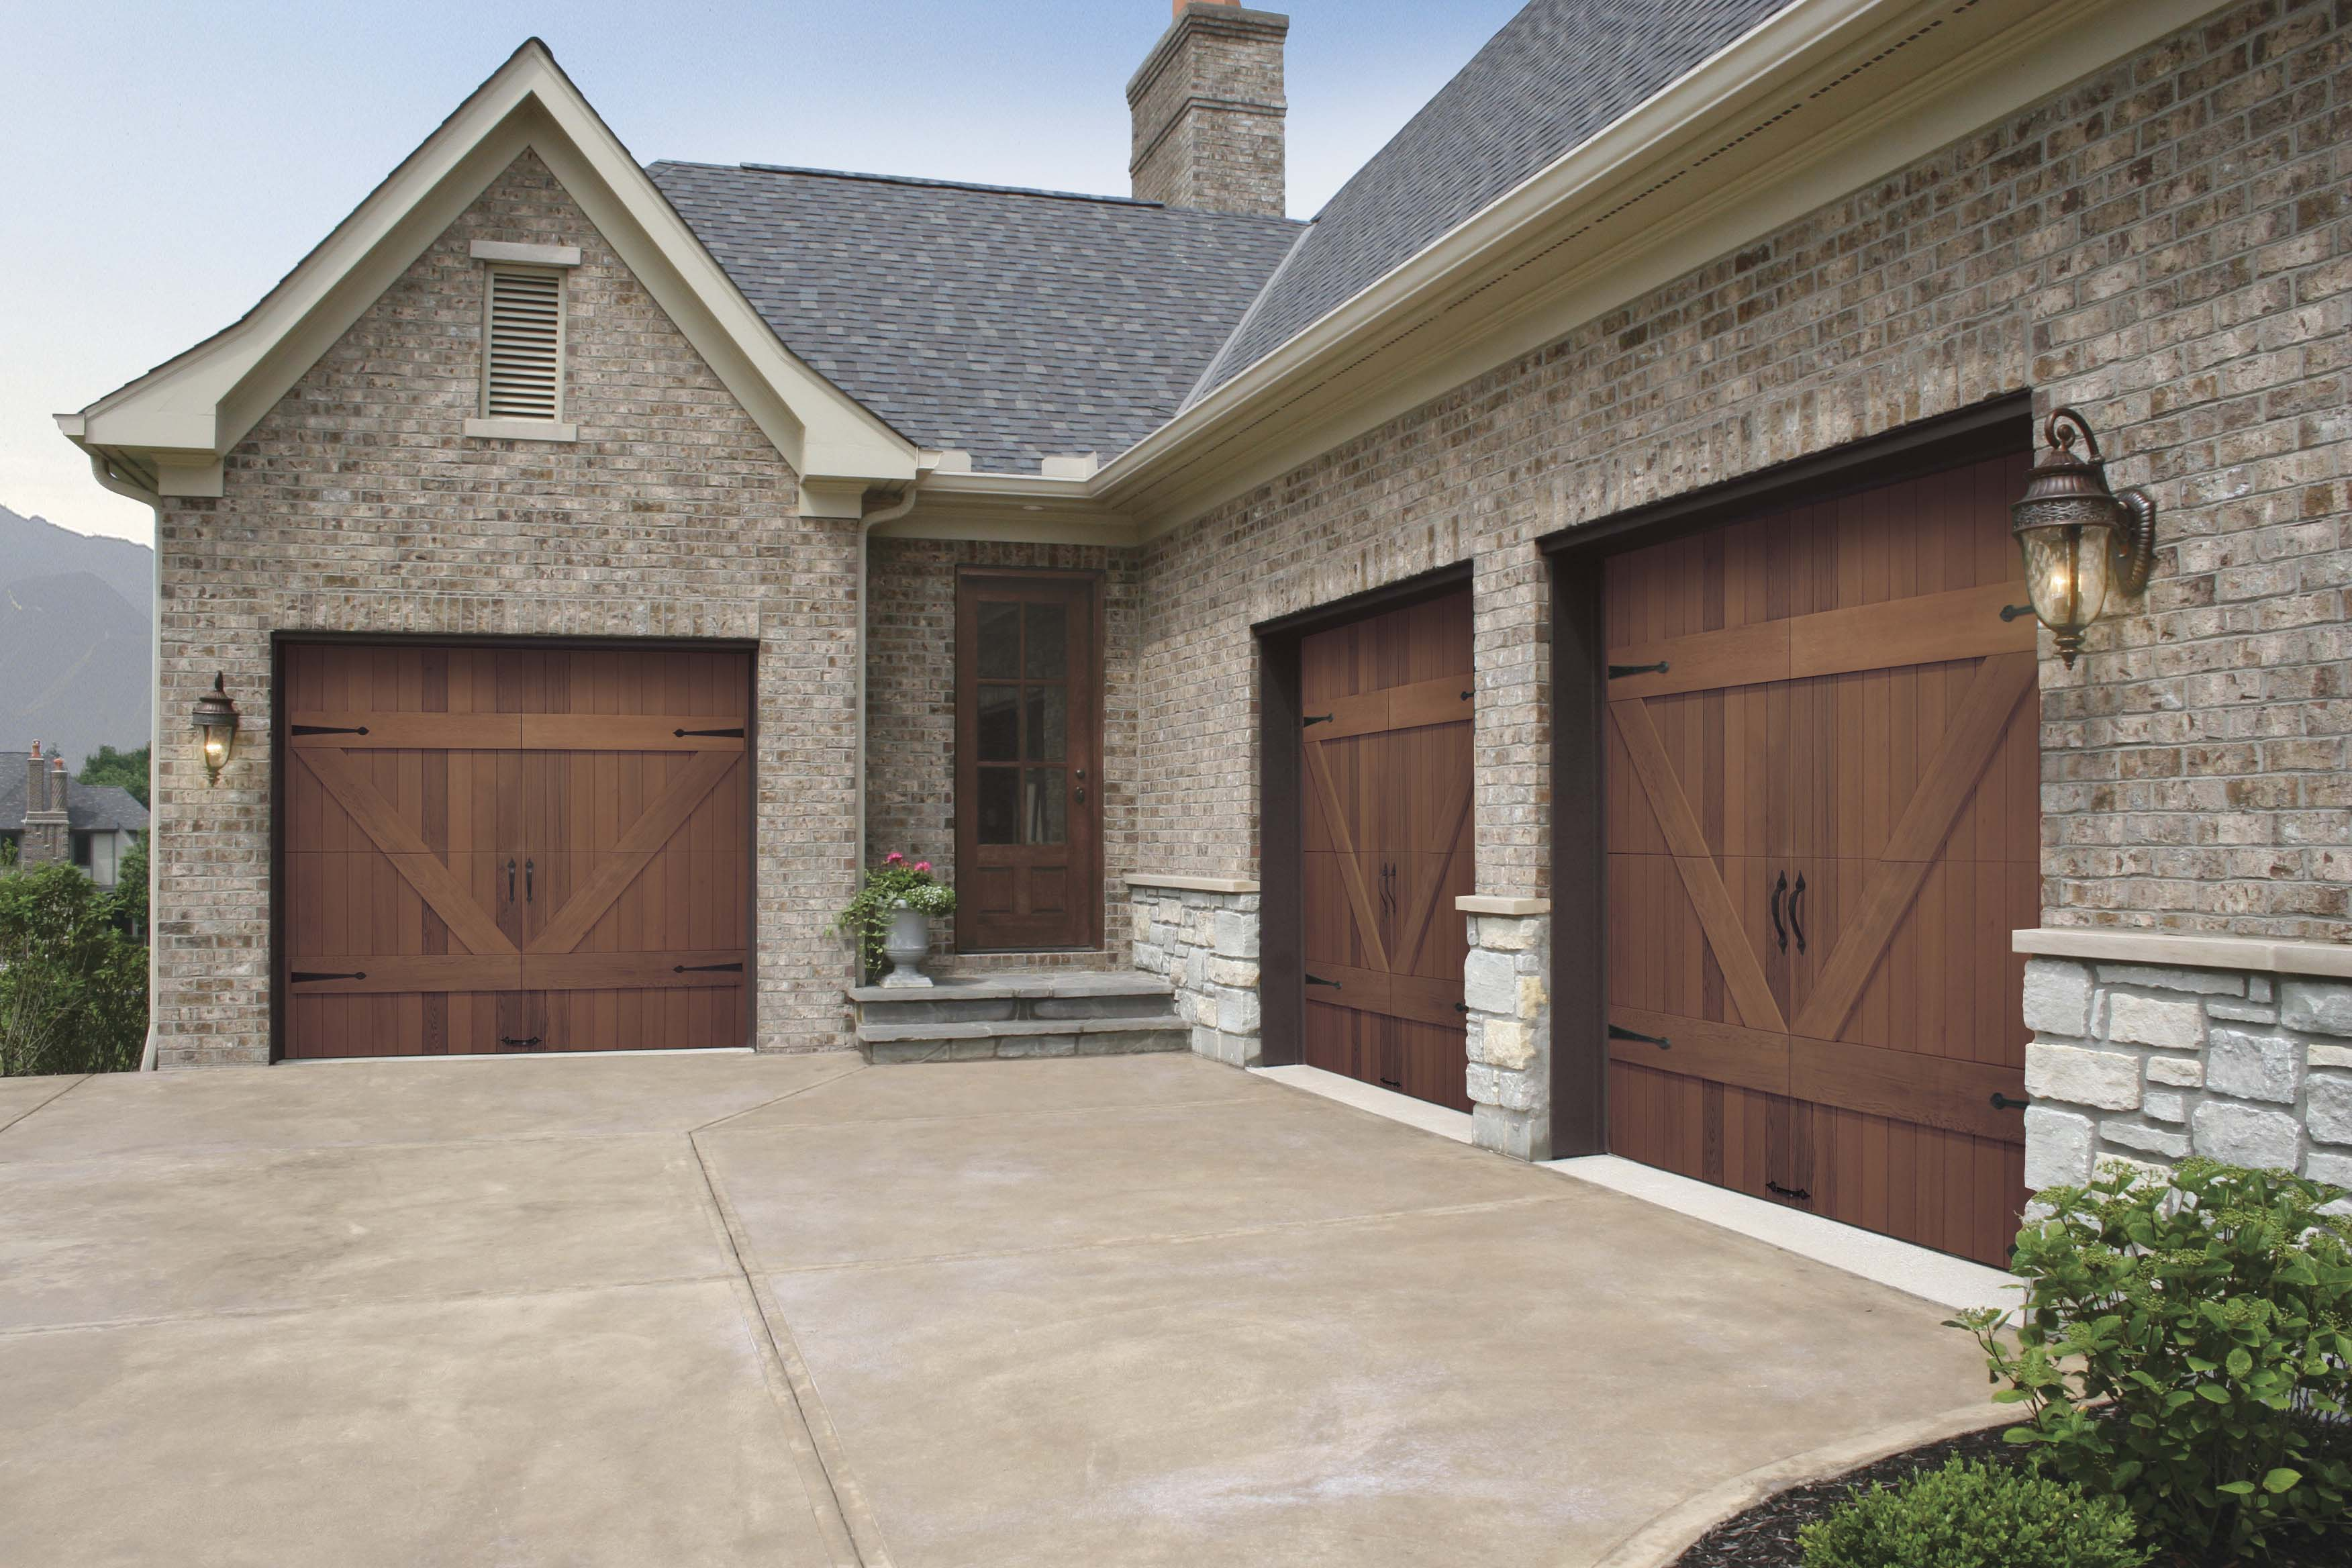 Garage Door Panels : Garage door repair alpharetta ga services